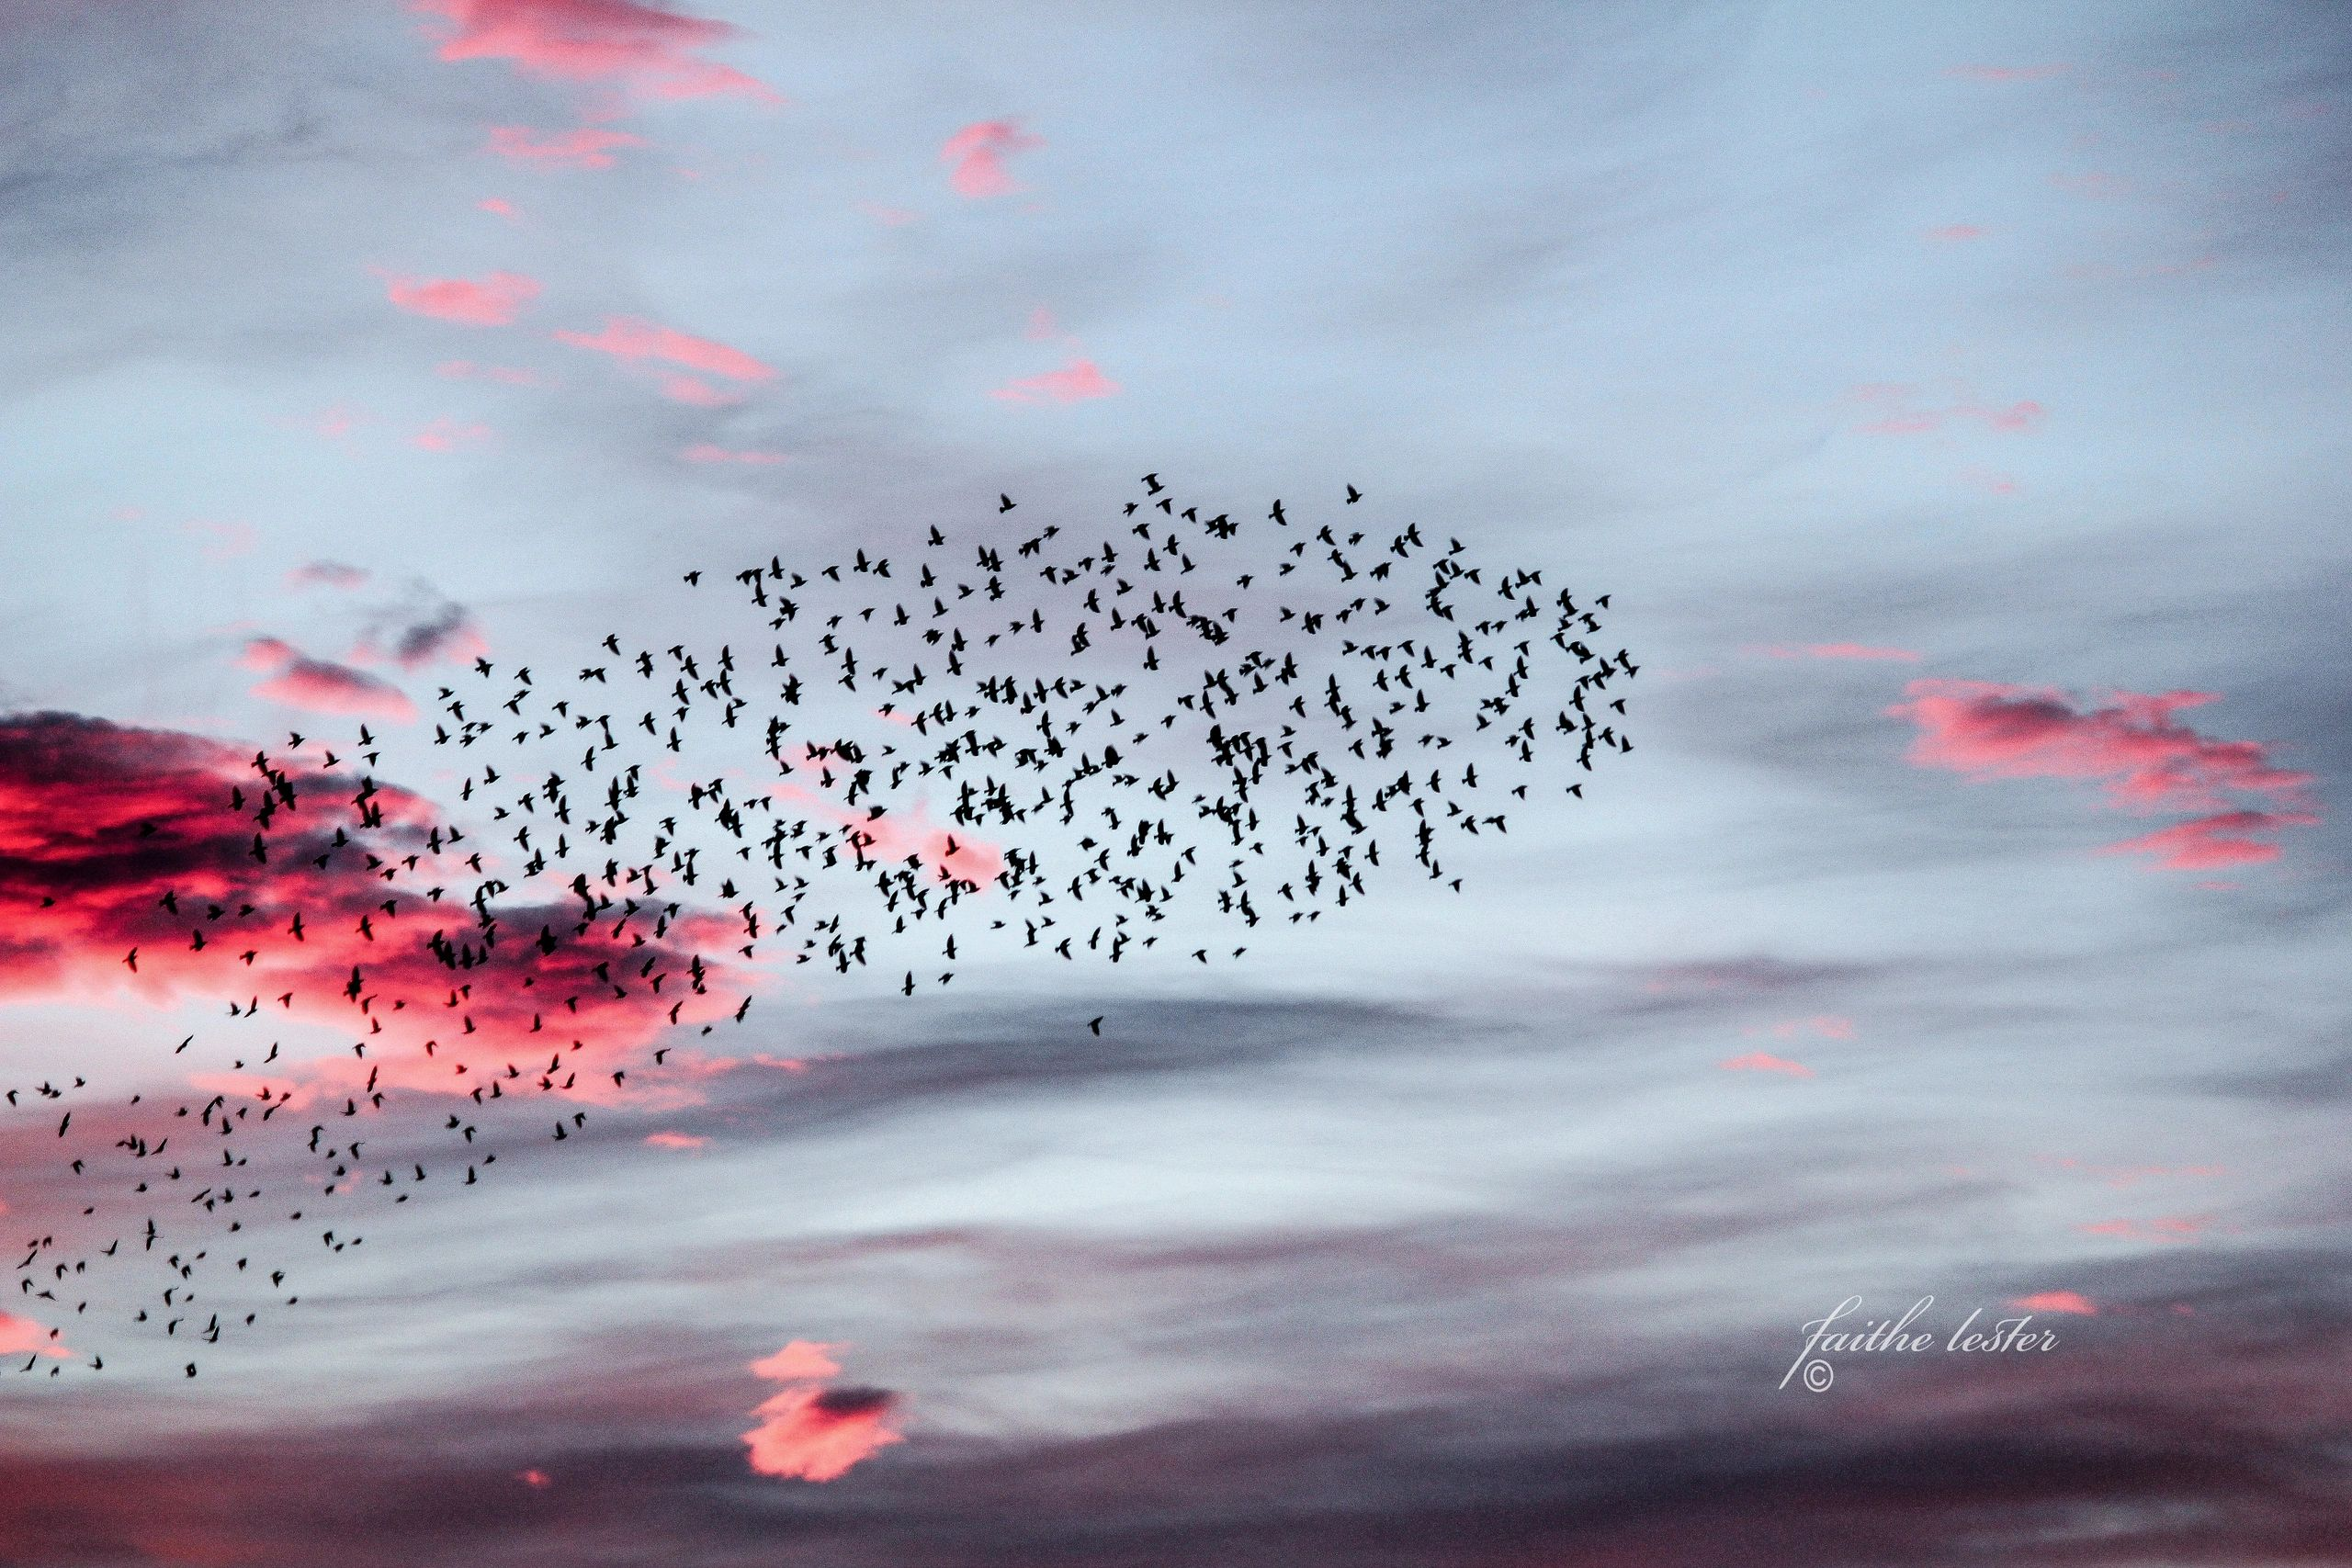 An abstract image from nature. Black birds and red clouds in the morning light.